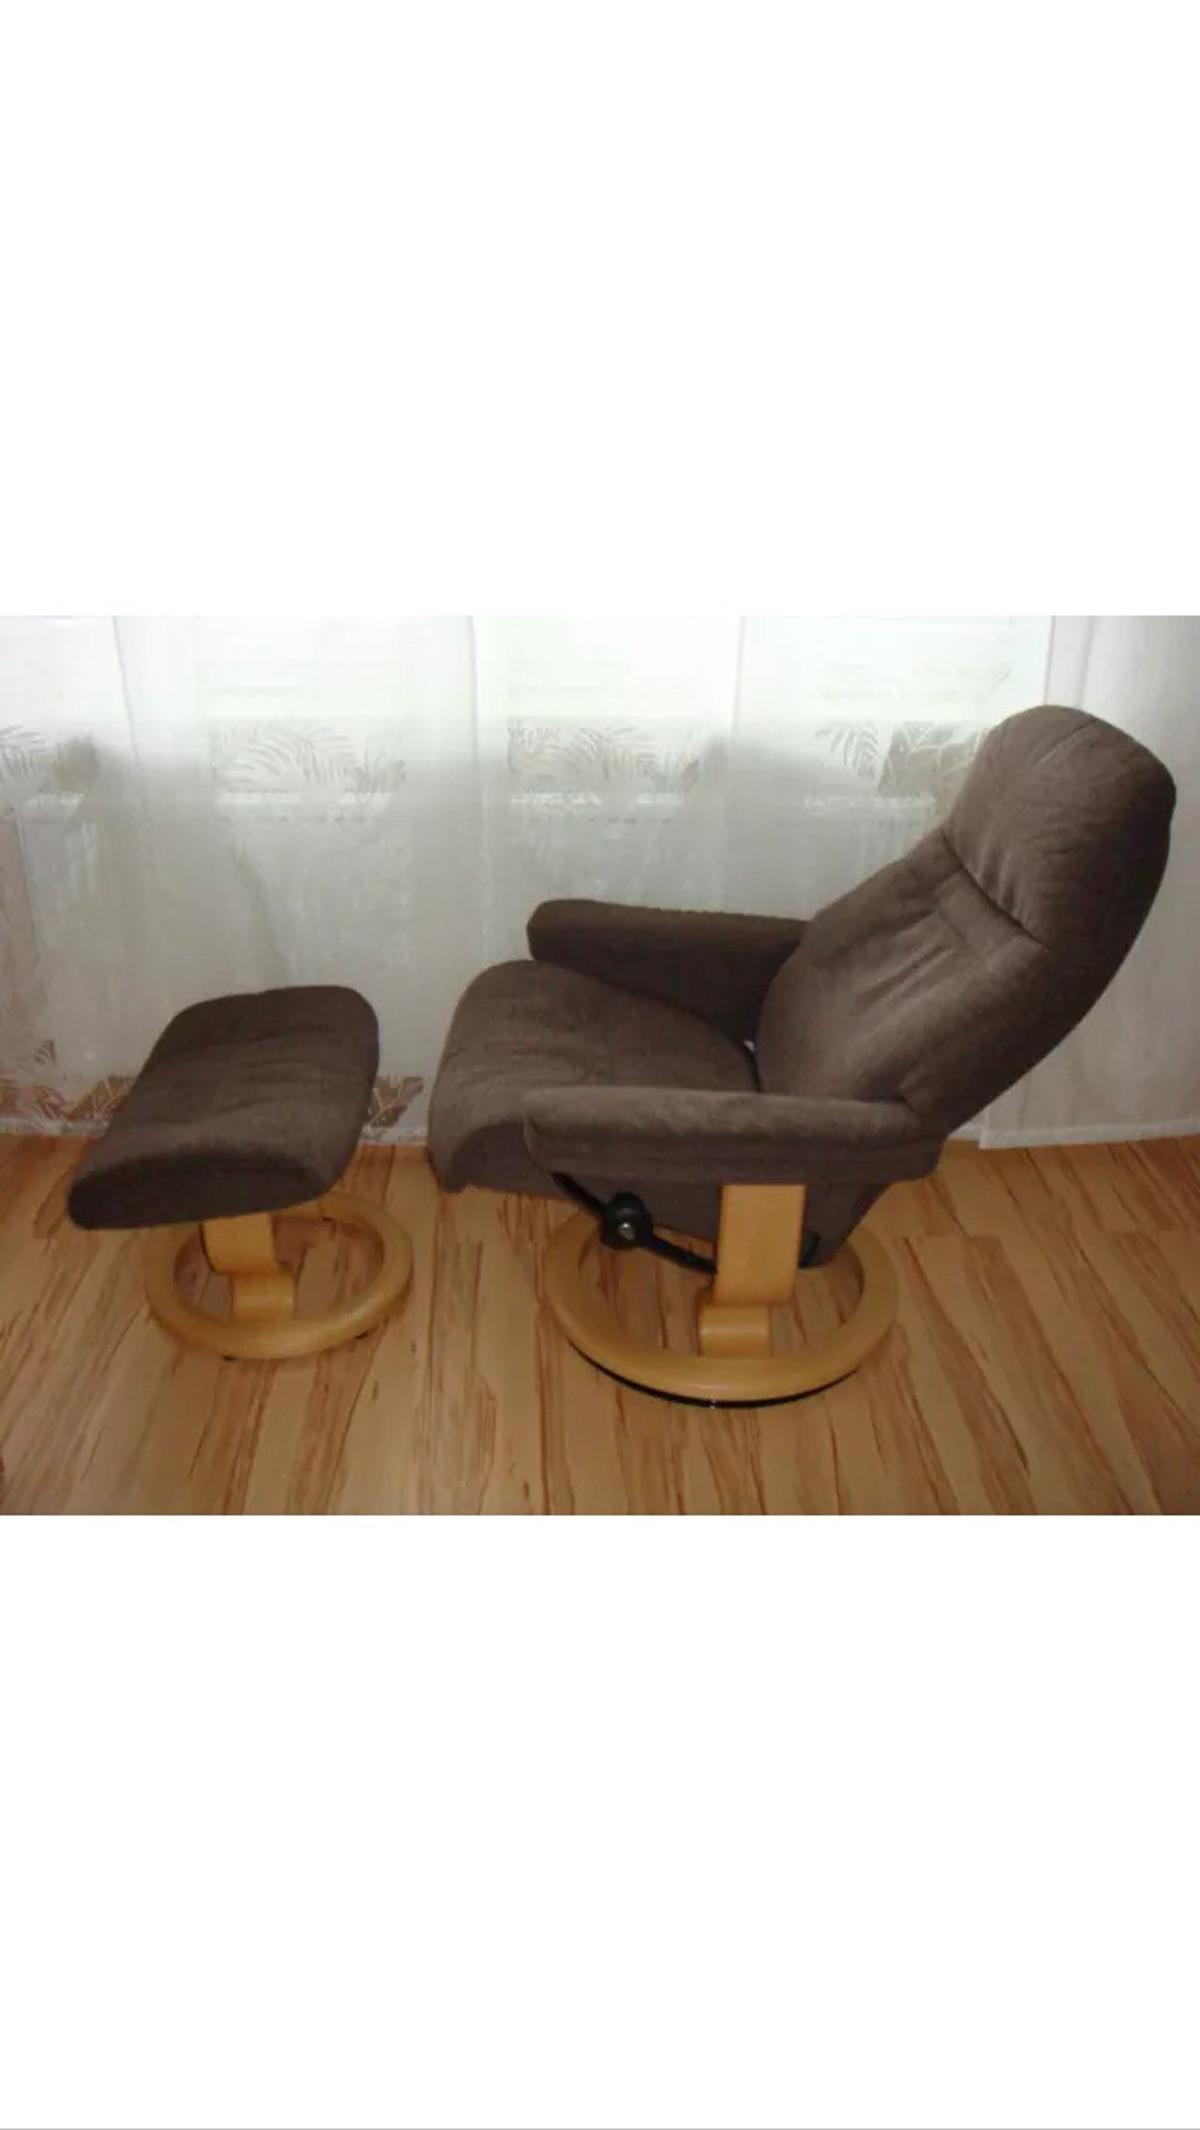 Stressless Sessel Mit Hocker Erkoness Stressless Sessel Mit Hocker